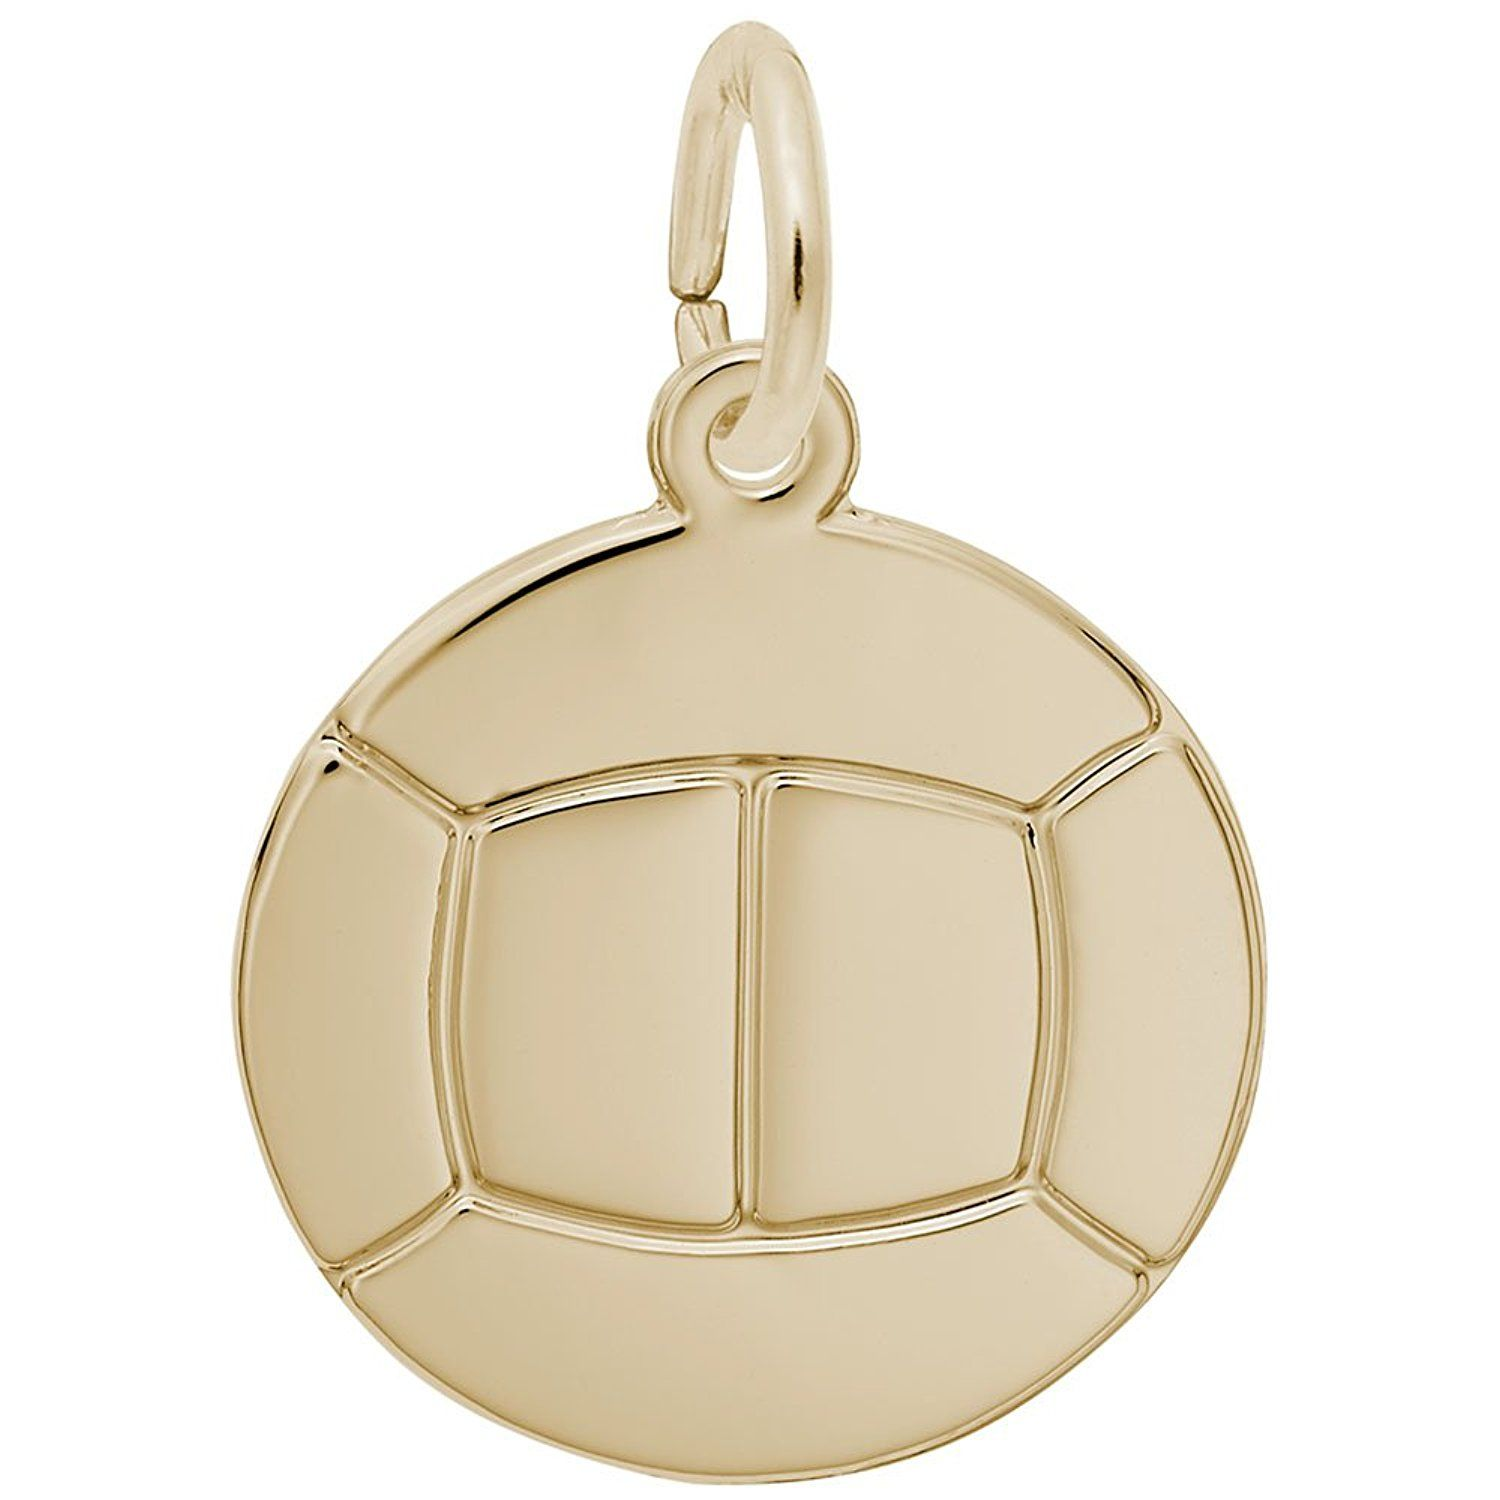 Volleyball Charm Charms For Bracelets And Necklaces Click Image To Review More Details This Is An Affiliate Link Jewelryfors Gold 10k Gold Fine Charms